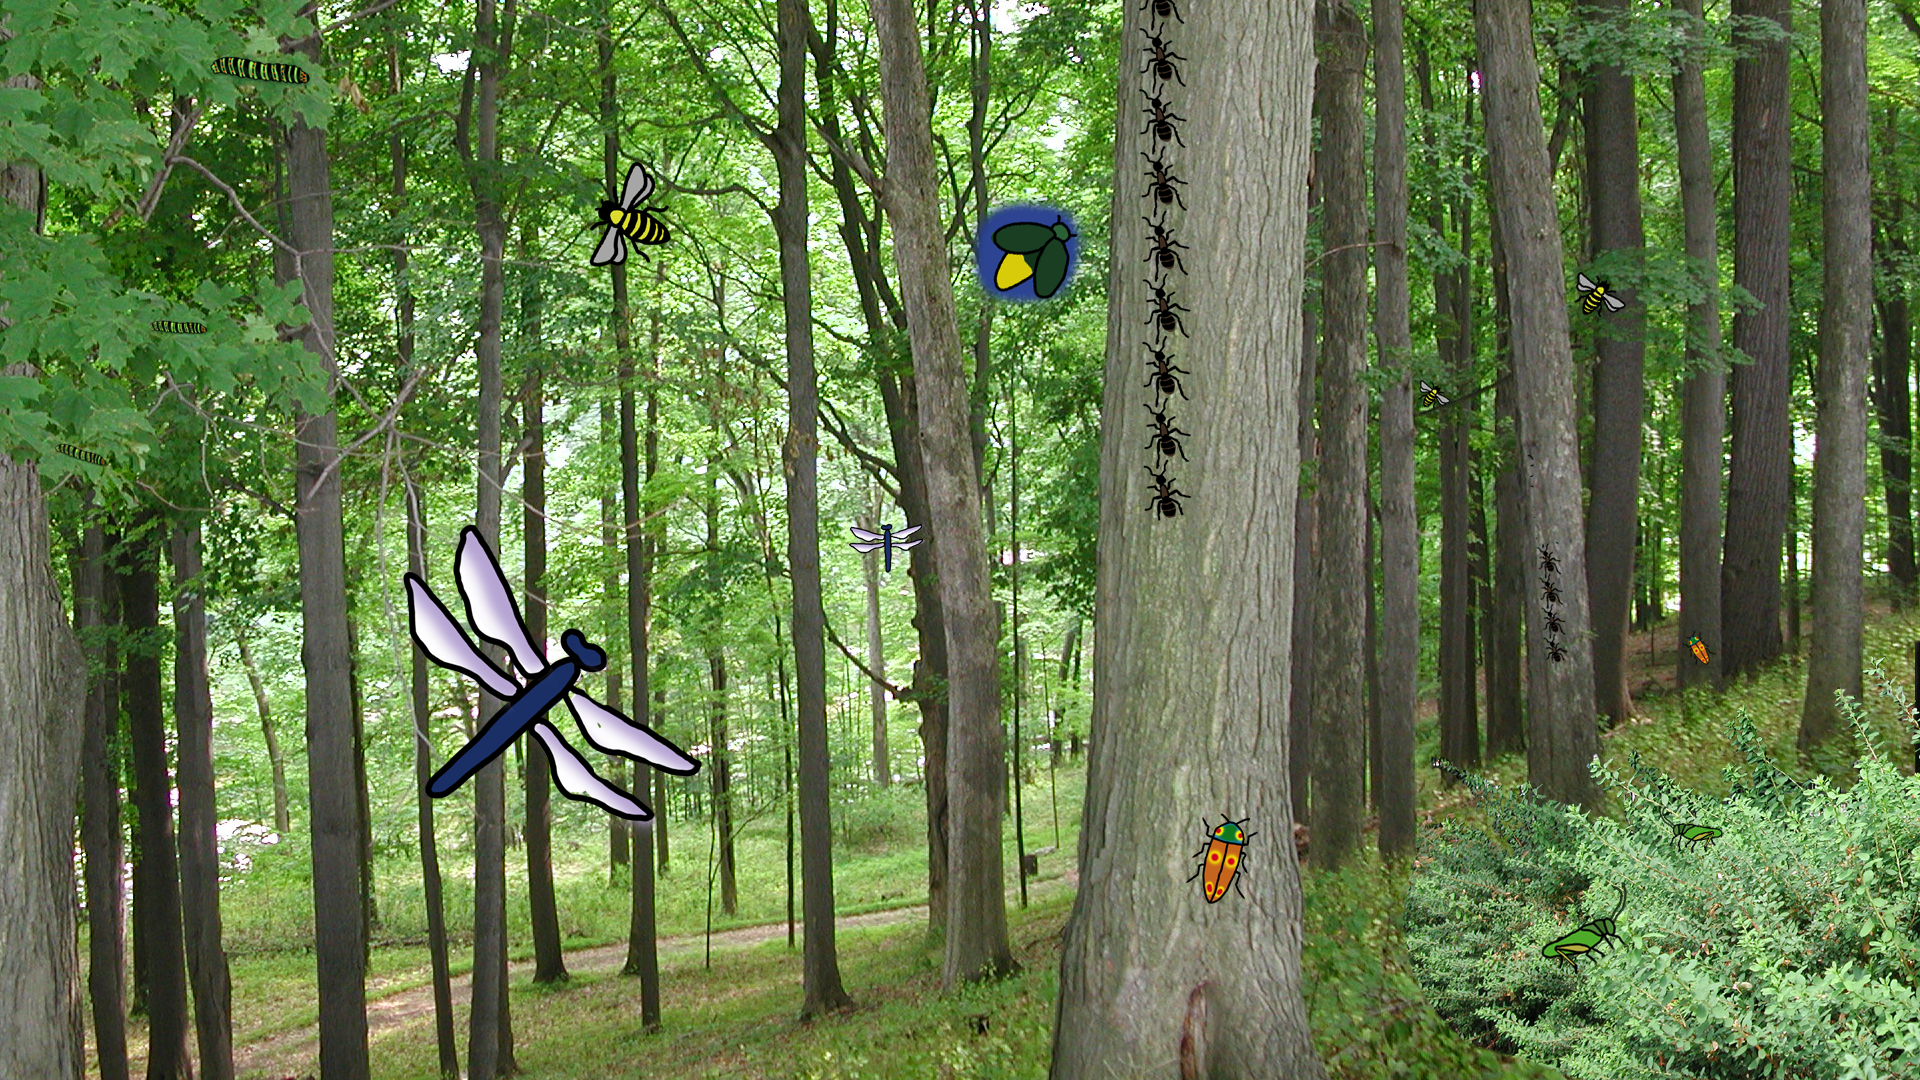 Bugs in the Woods by Jane Aaron